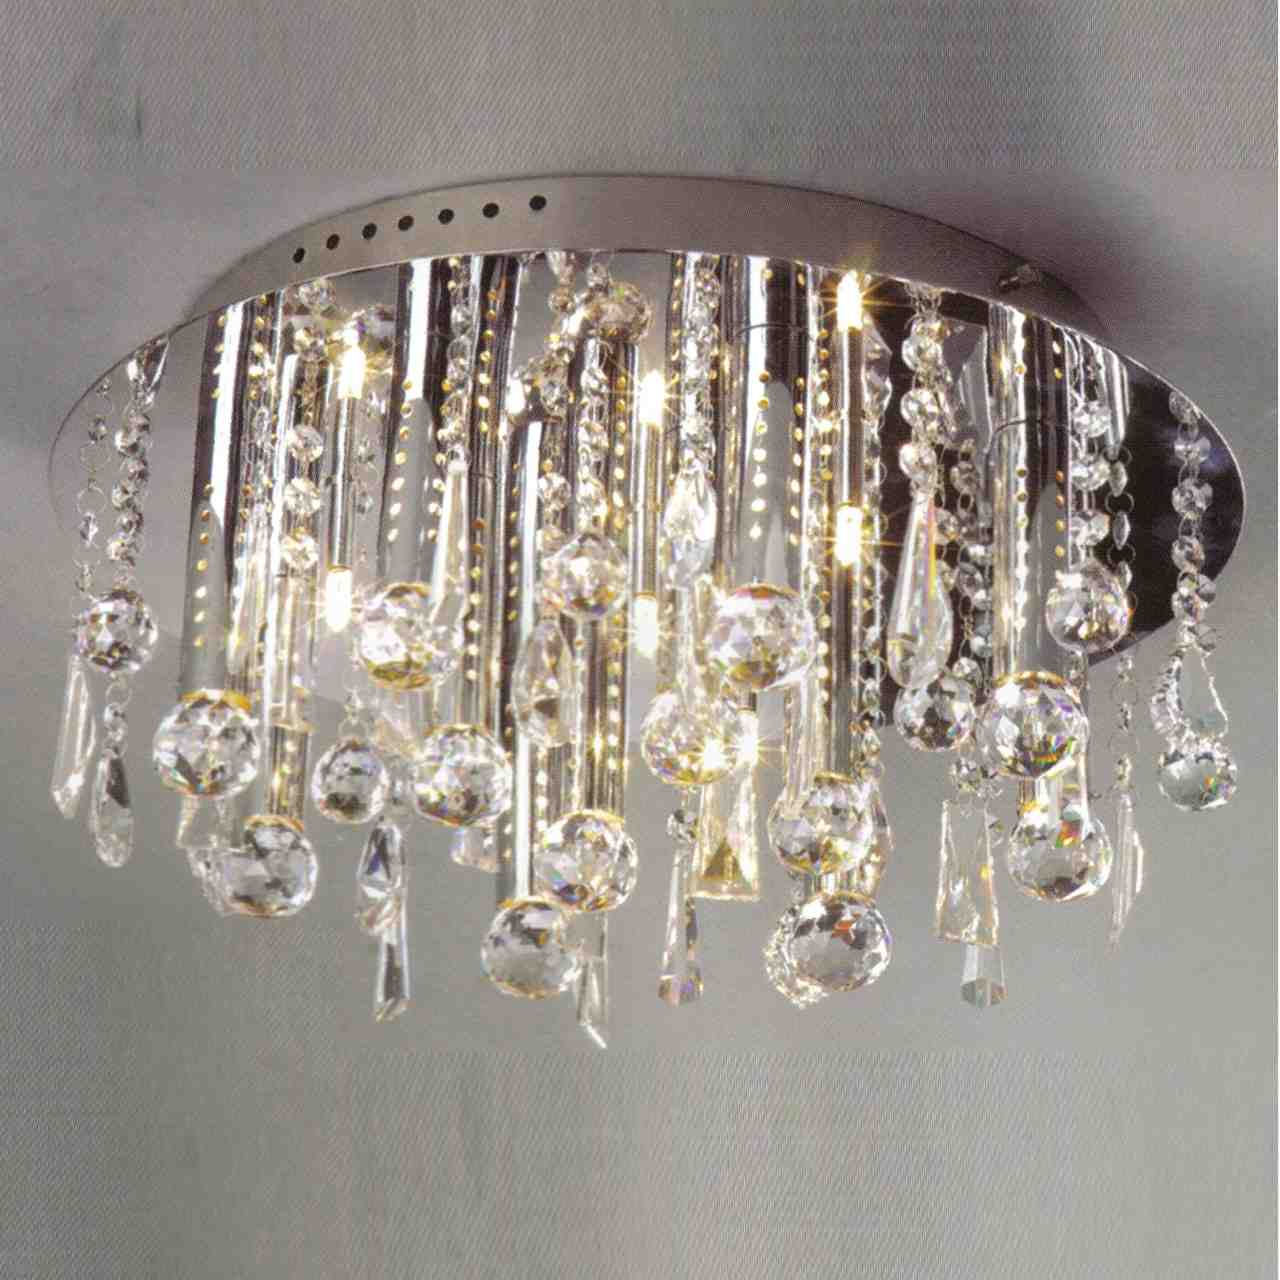 Brizzo Lighting Stores 14 Quot Miraggio Modern Crystal Flush